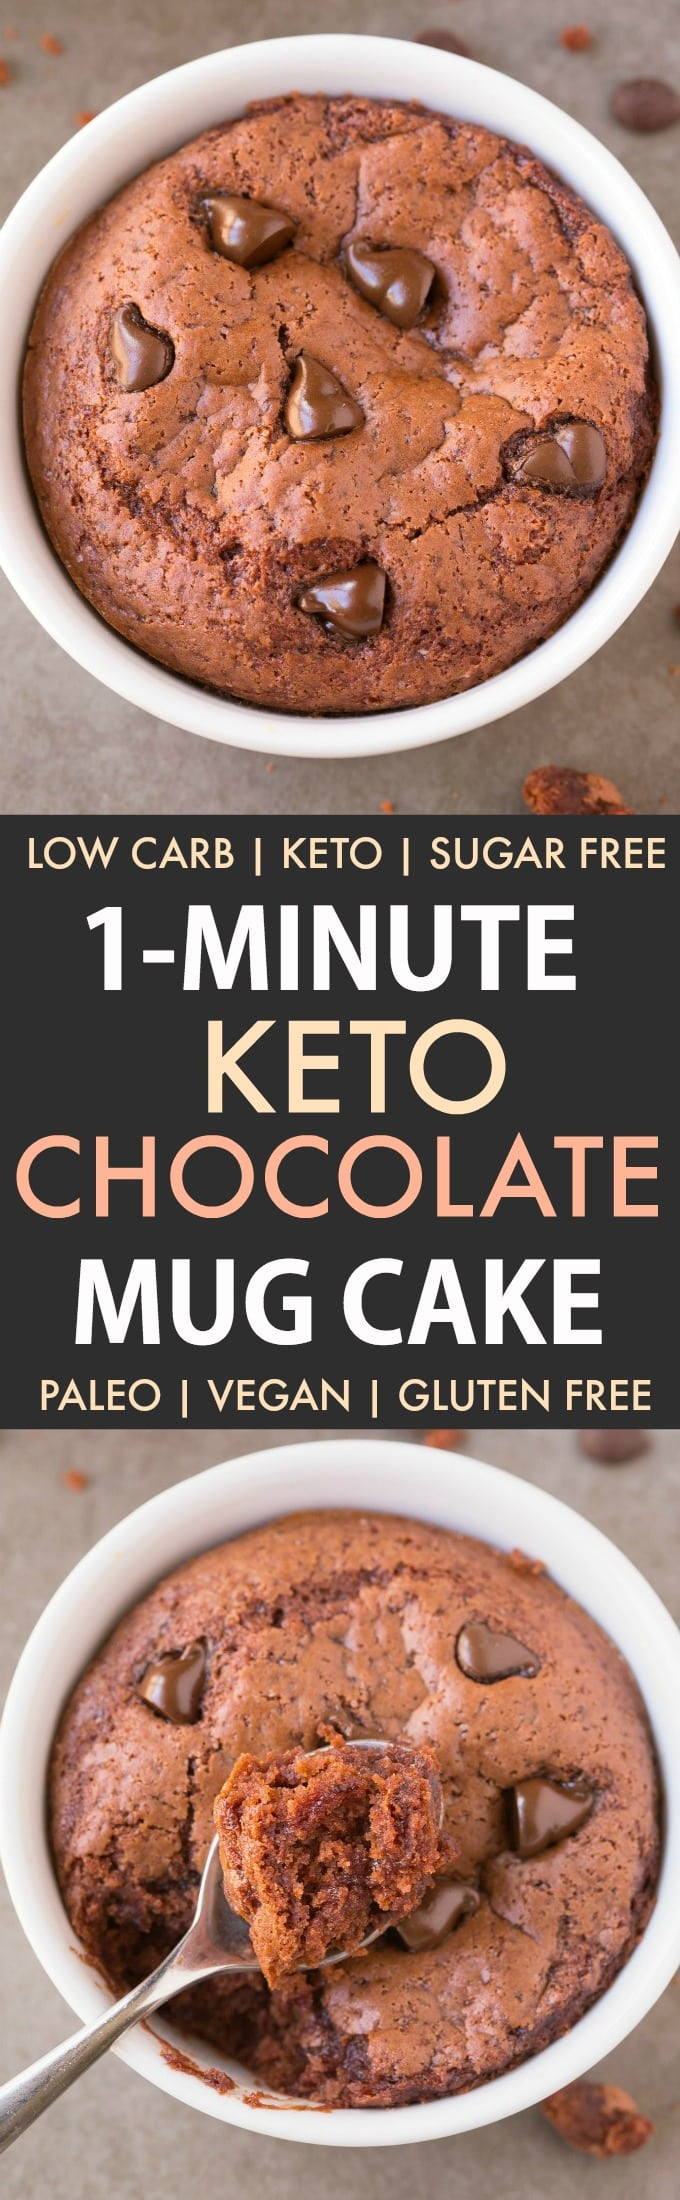 1-Minute Keto Chocolate Mug Cake (Paleo, Vegan, Sugar Free, Low Carb)- An easy eggless chocolate mug cake recipe which takes one minute and is super fluffy, light and packed with protein- Made with coconut flour and cocoa! #keto #ketodessert #ketorecipe #mugcake | Recipe on thebigmansworld.com